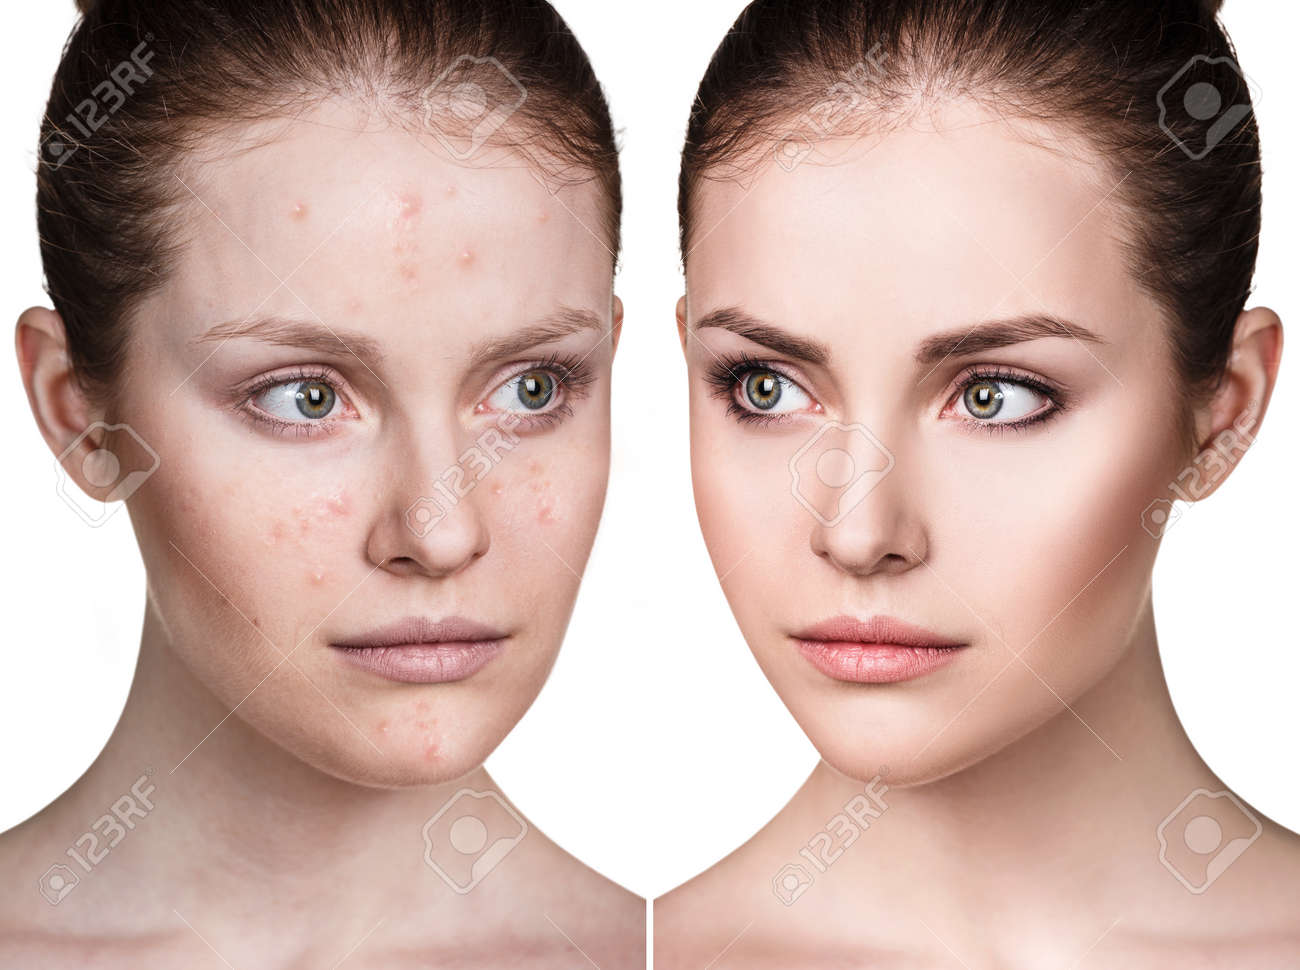 Girl with acne before and after treatment. - 74441961